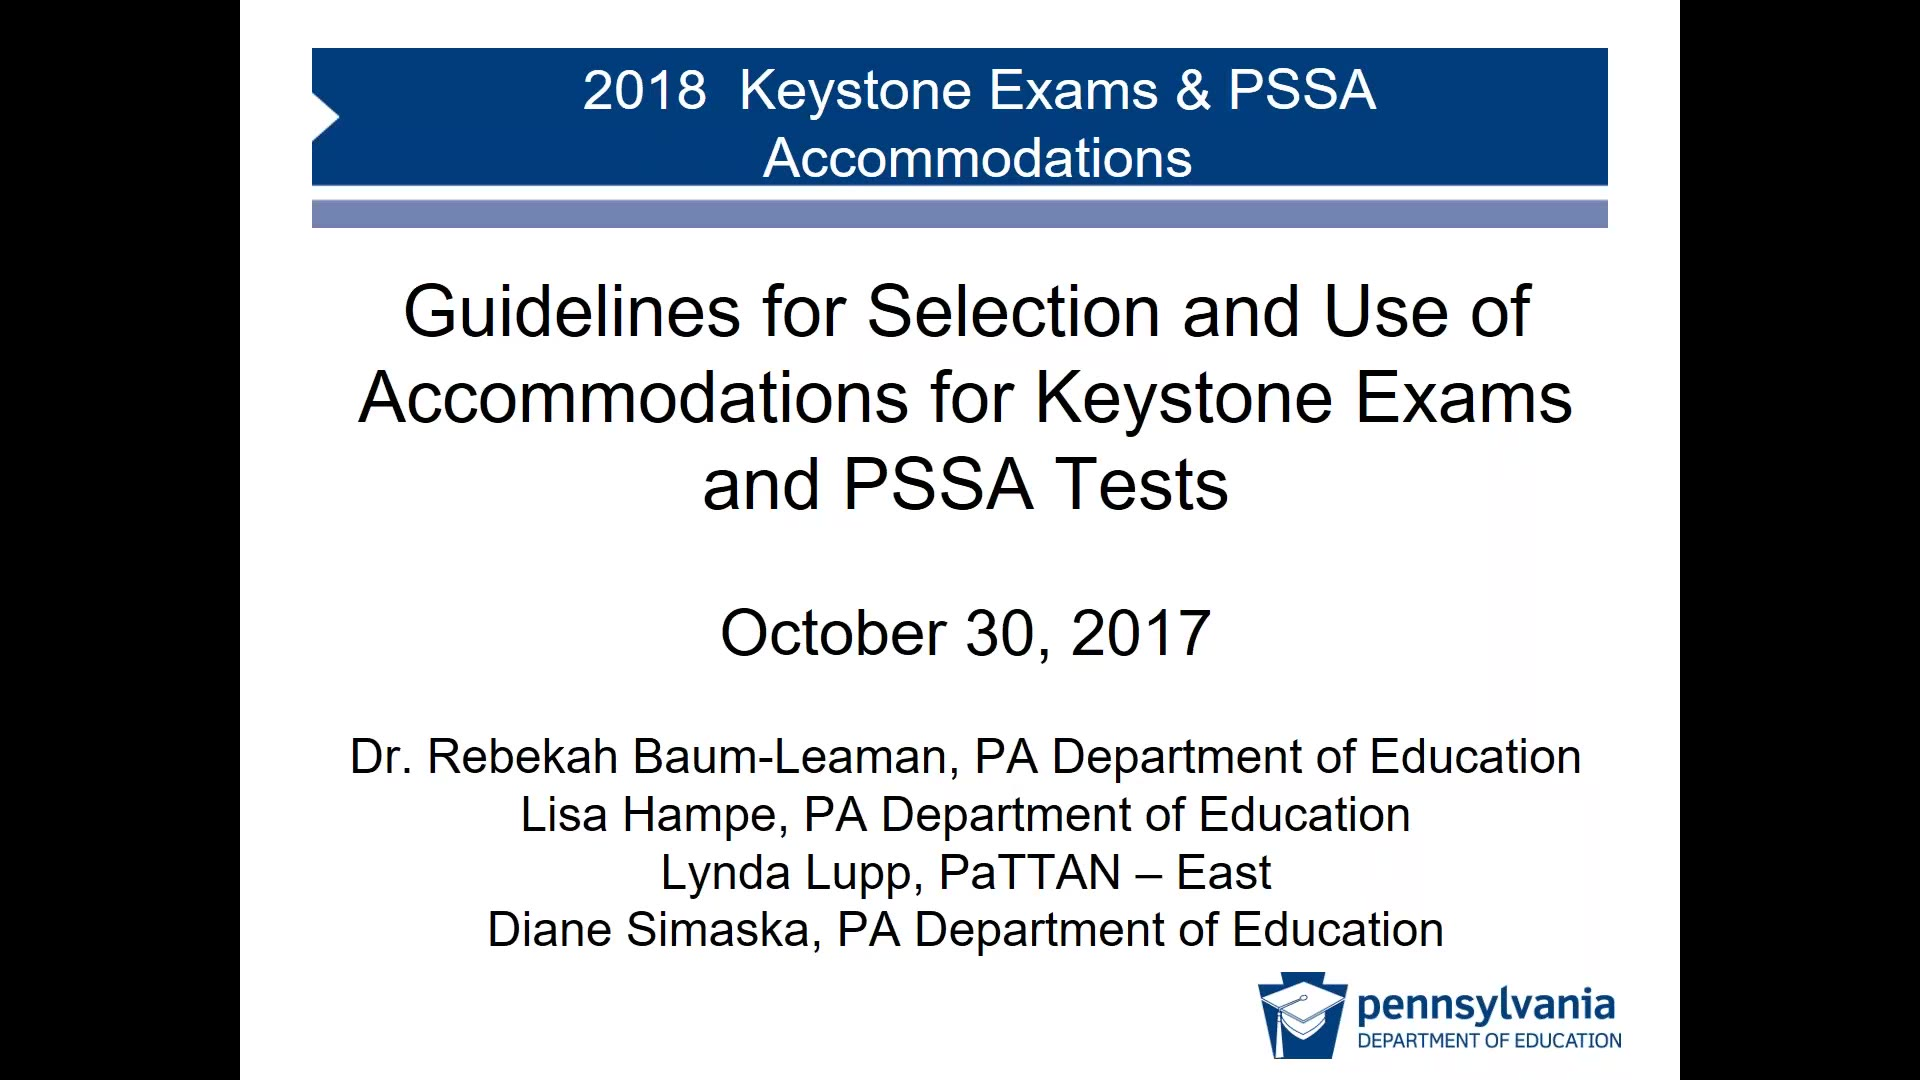 2018 Guidelines for Selection and Use of Accommodations for Keystone Exams and PSSA Tests